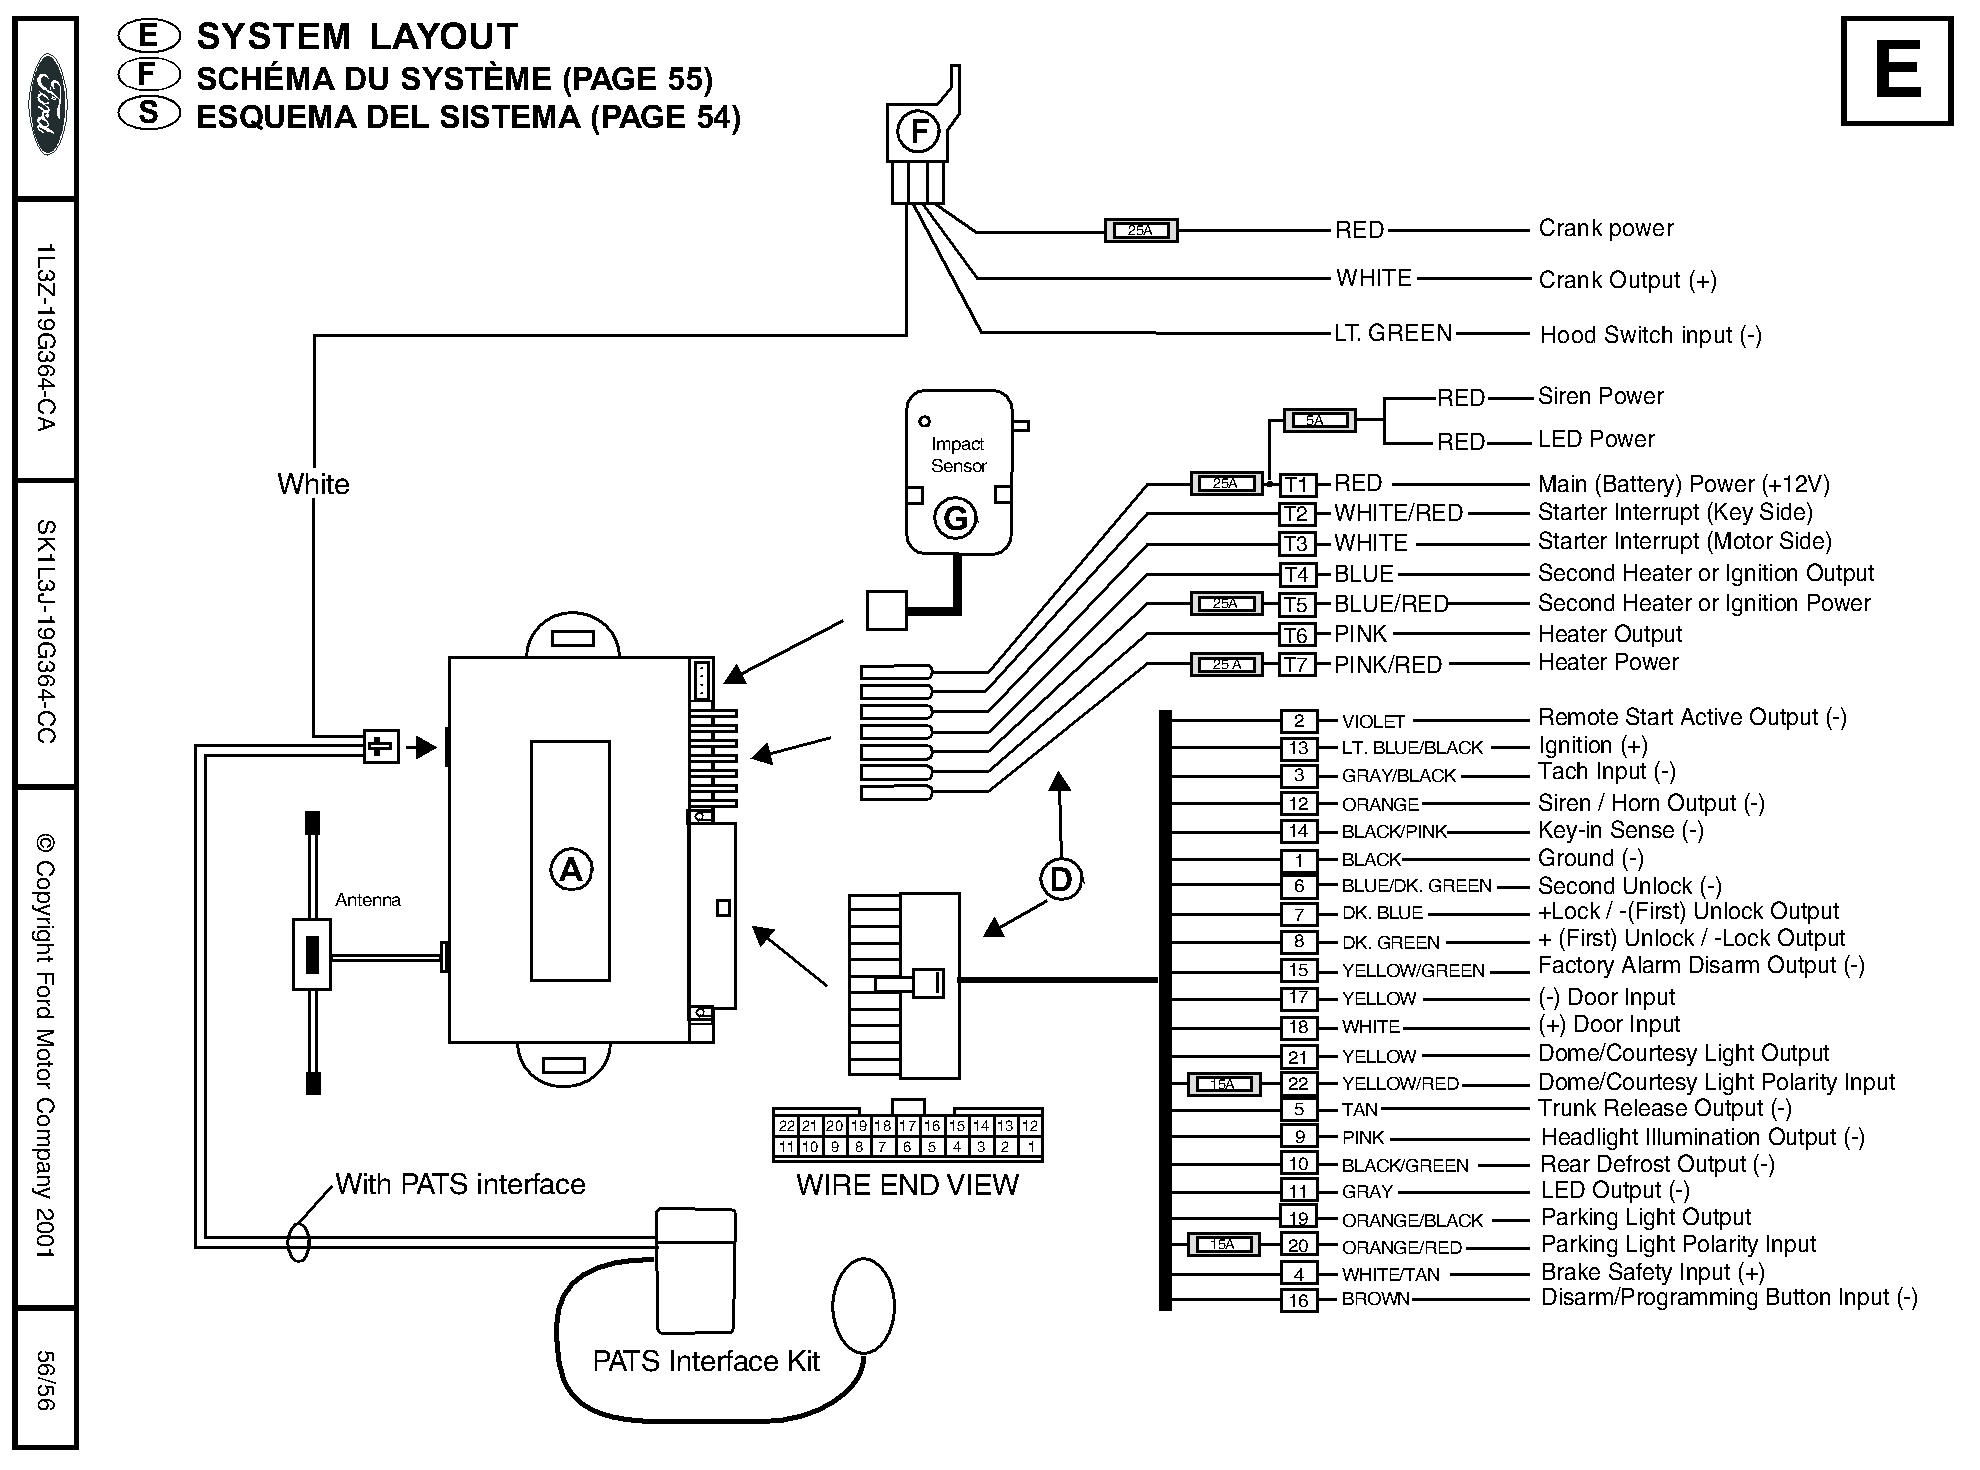 80 2010 09 08 221716 1 On 98 Ford F150 Wiring Diagram also Neutral Safety Switch Wiring Diagram Ford as well Jeep Cherokee 2 5 1988 Specs And Images besides Index as well 7udbc Ford F150 1989 Wont Start Crank Ok. on 1996 dodge 1500 headlight schematics